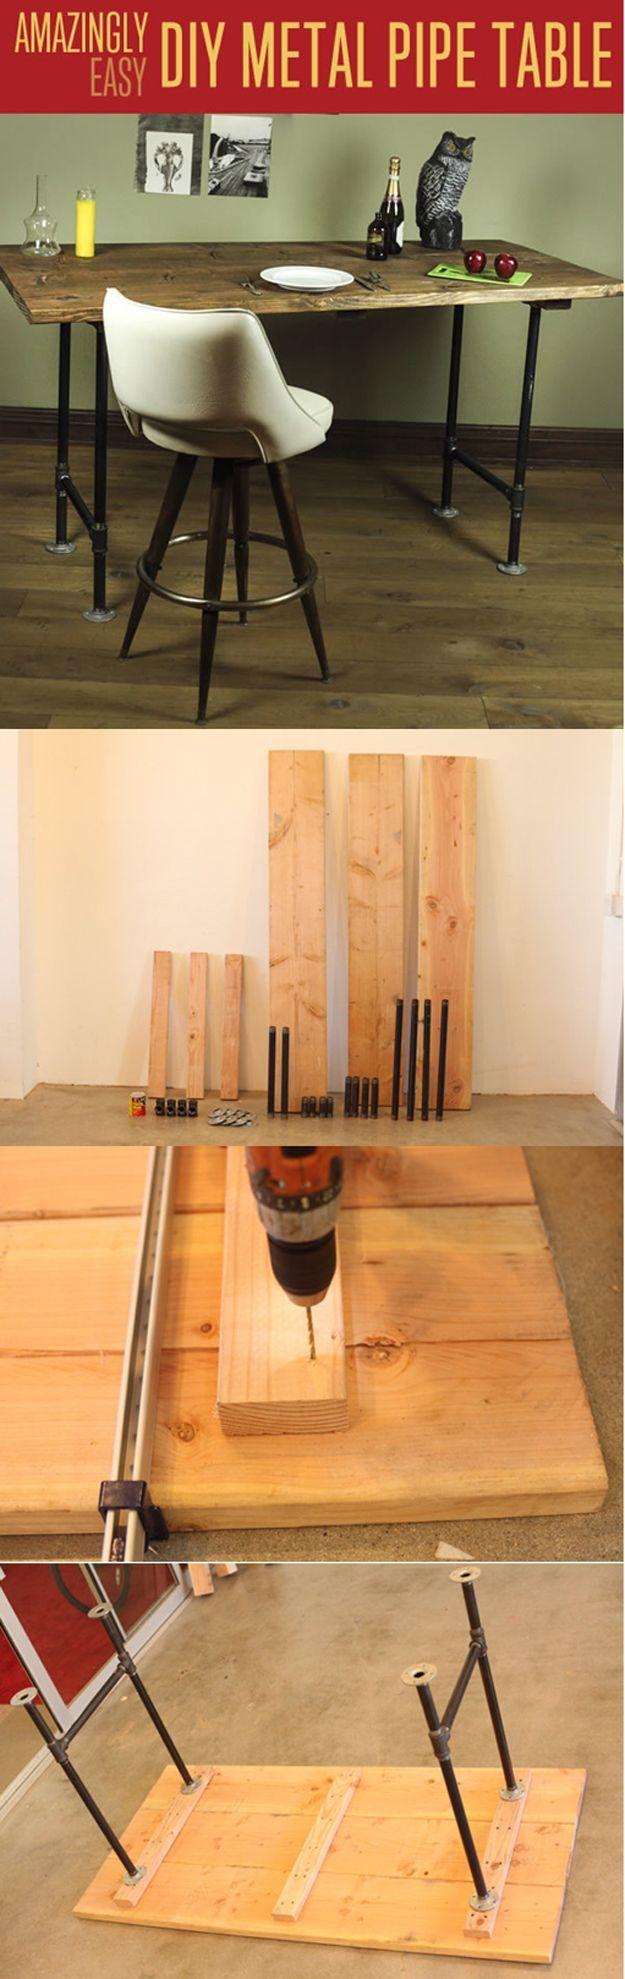 Easy DIY Table Woodworking Project for Beginners | Amazingly Easy DIY Metal Pipe Table by DIY Ready at diyready.com/...